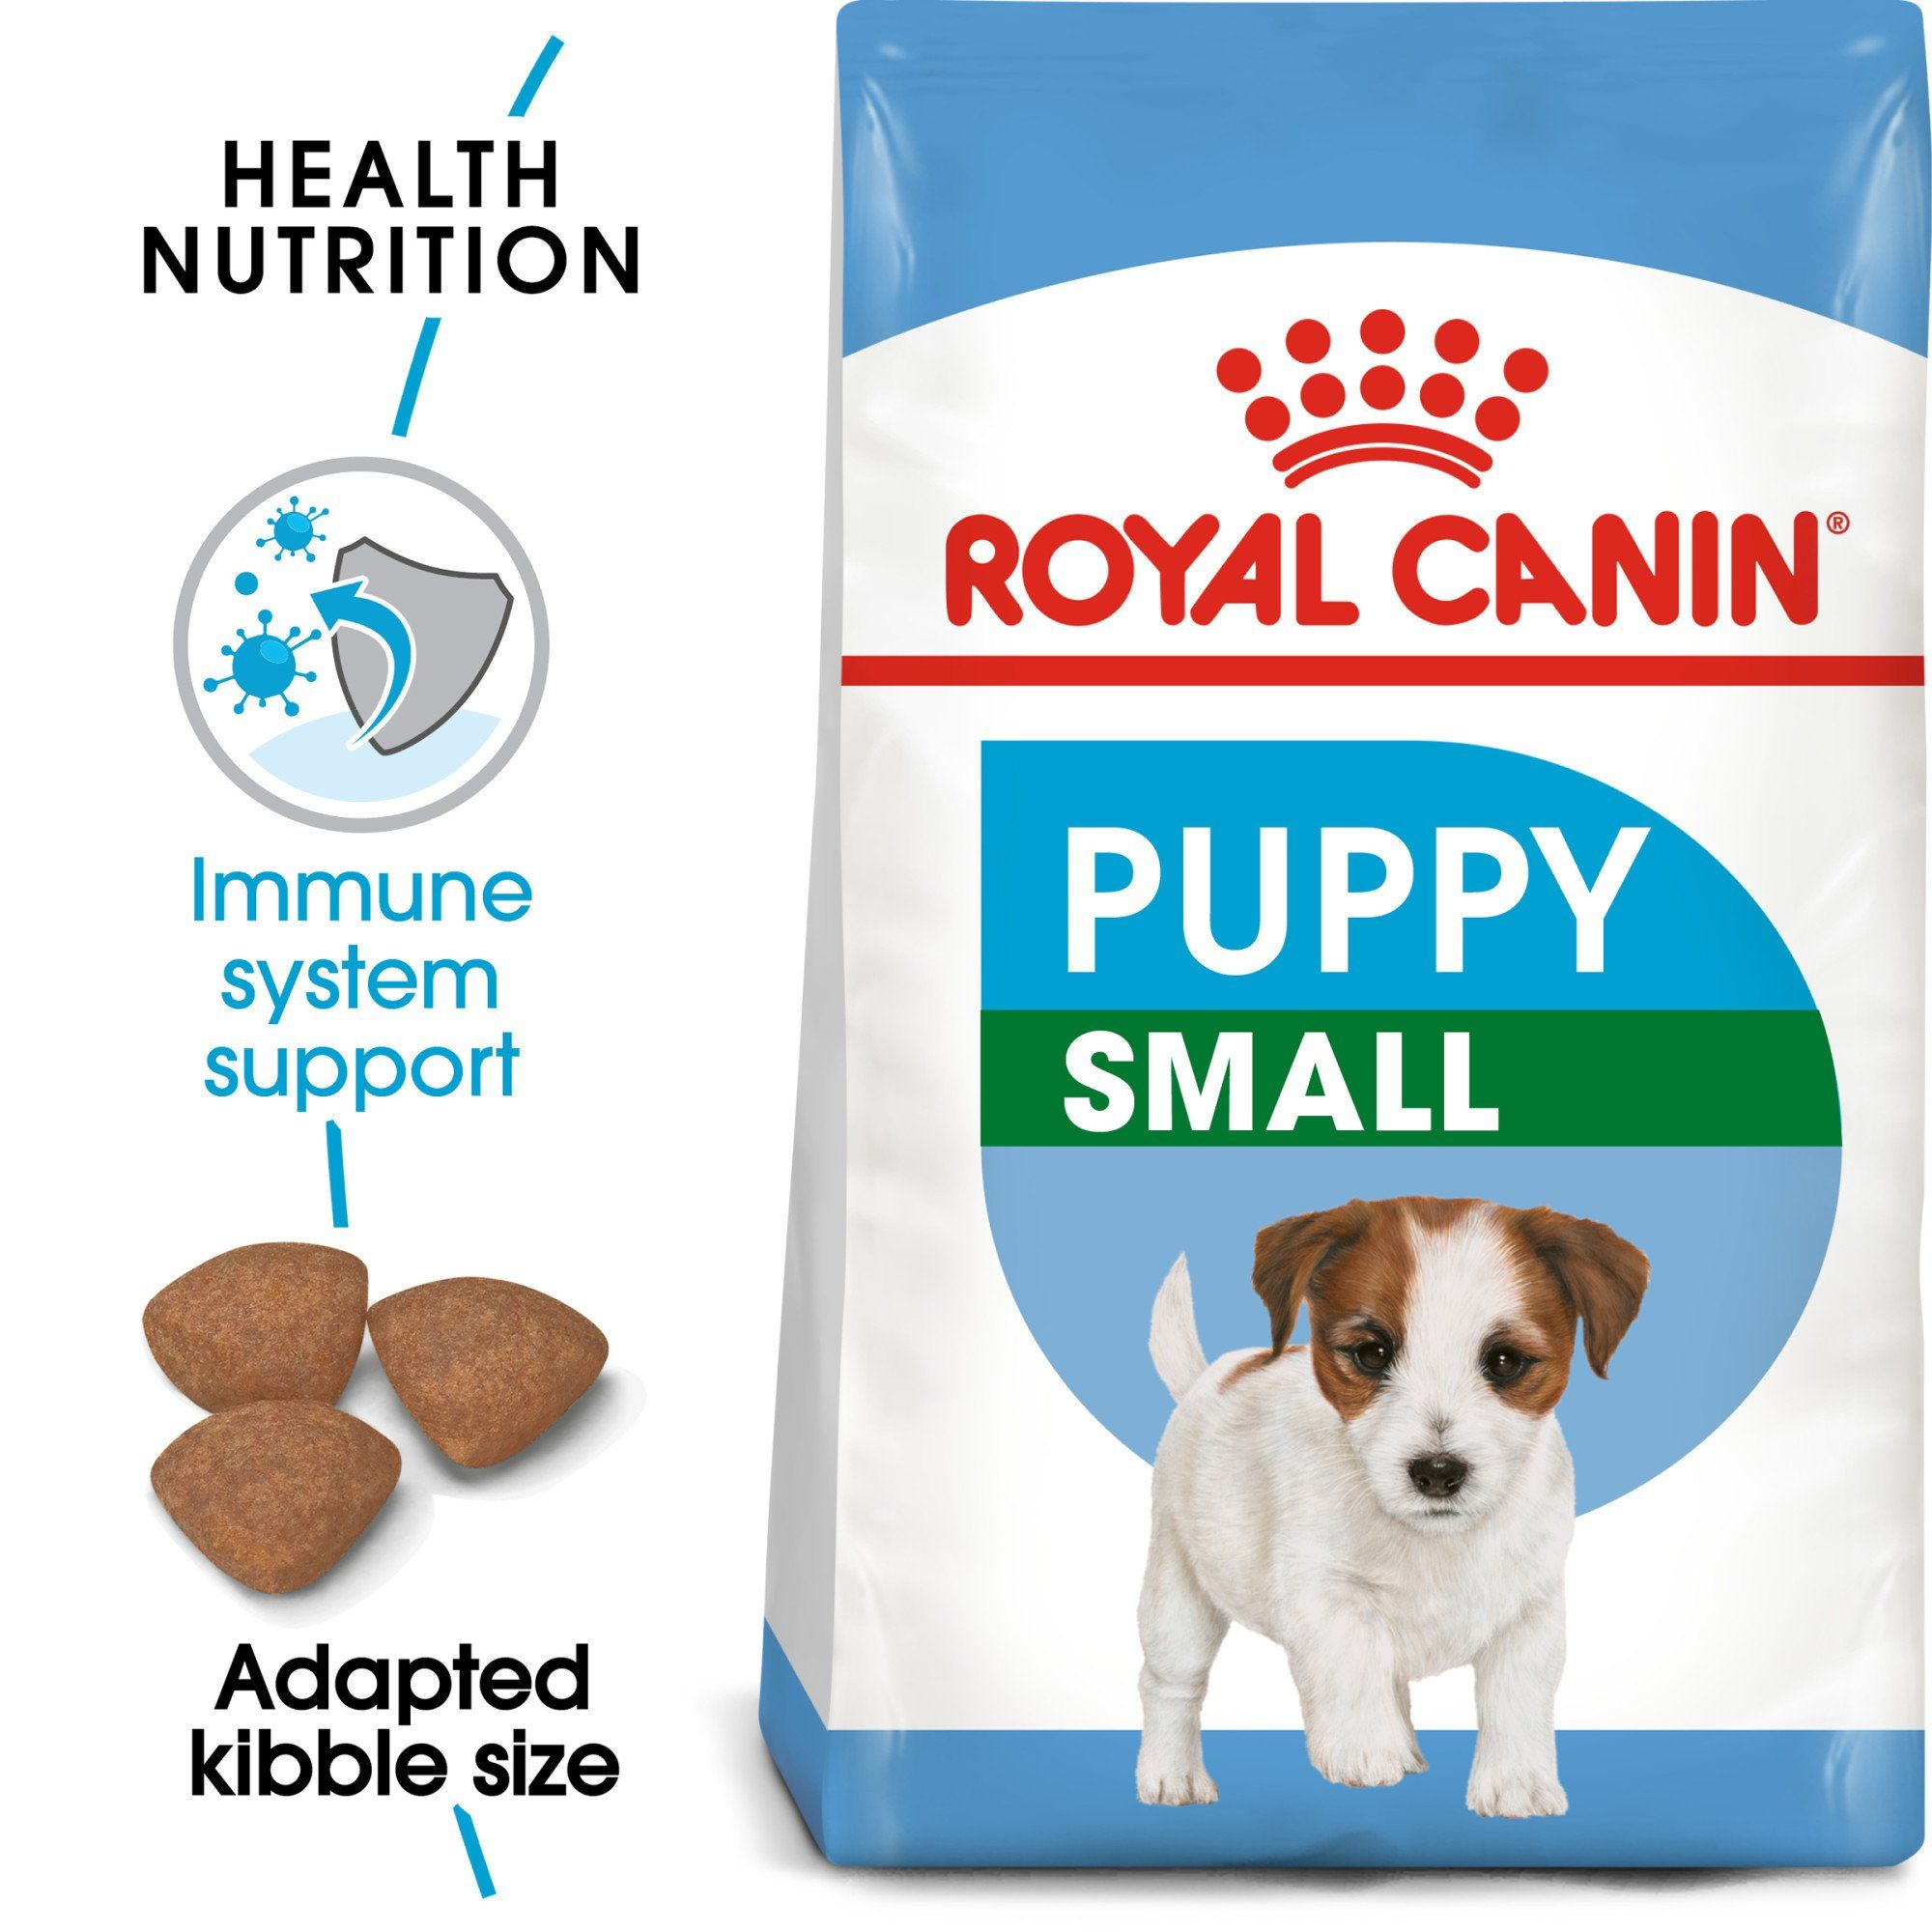 Royal Canin Small Puppy Dry Food 2 5 Lbs In 2020 Mini Puppies